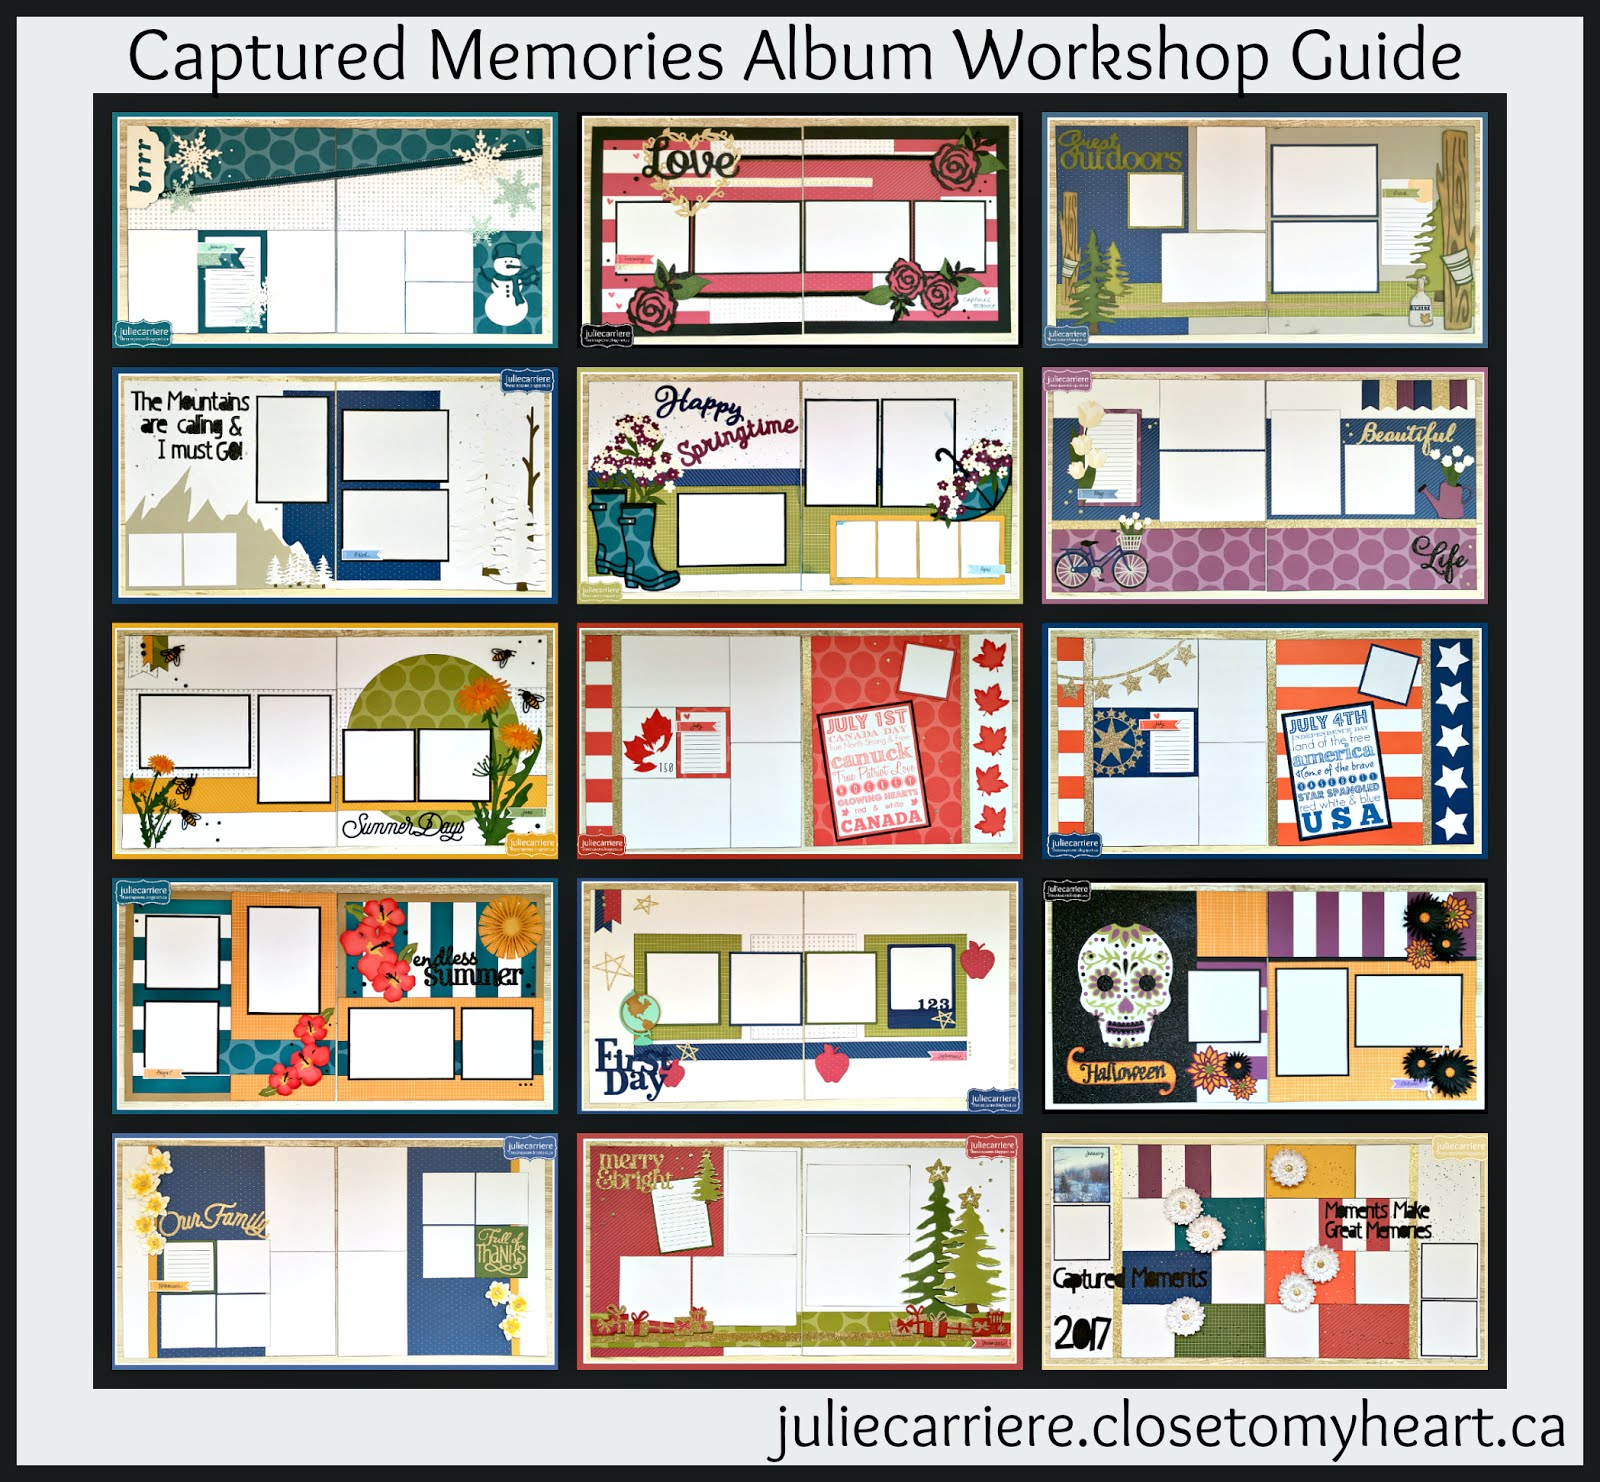 Captured Memories Album assembly guide for EXPLORE and expression